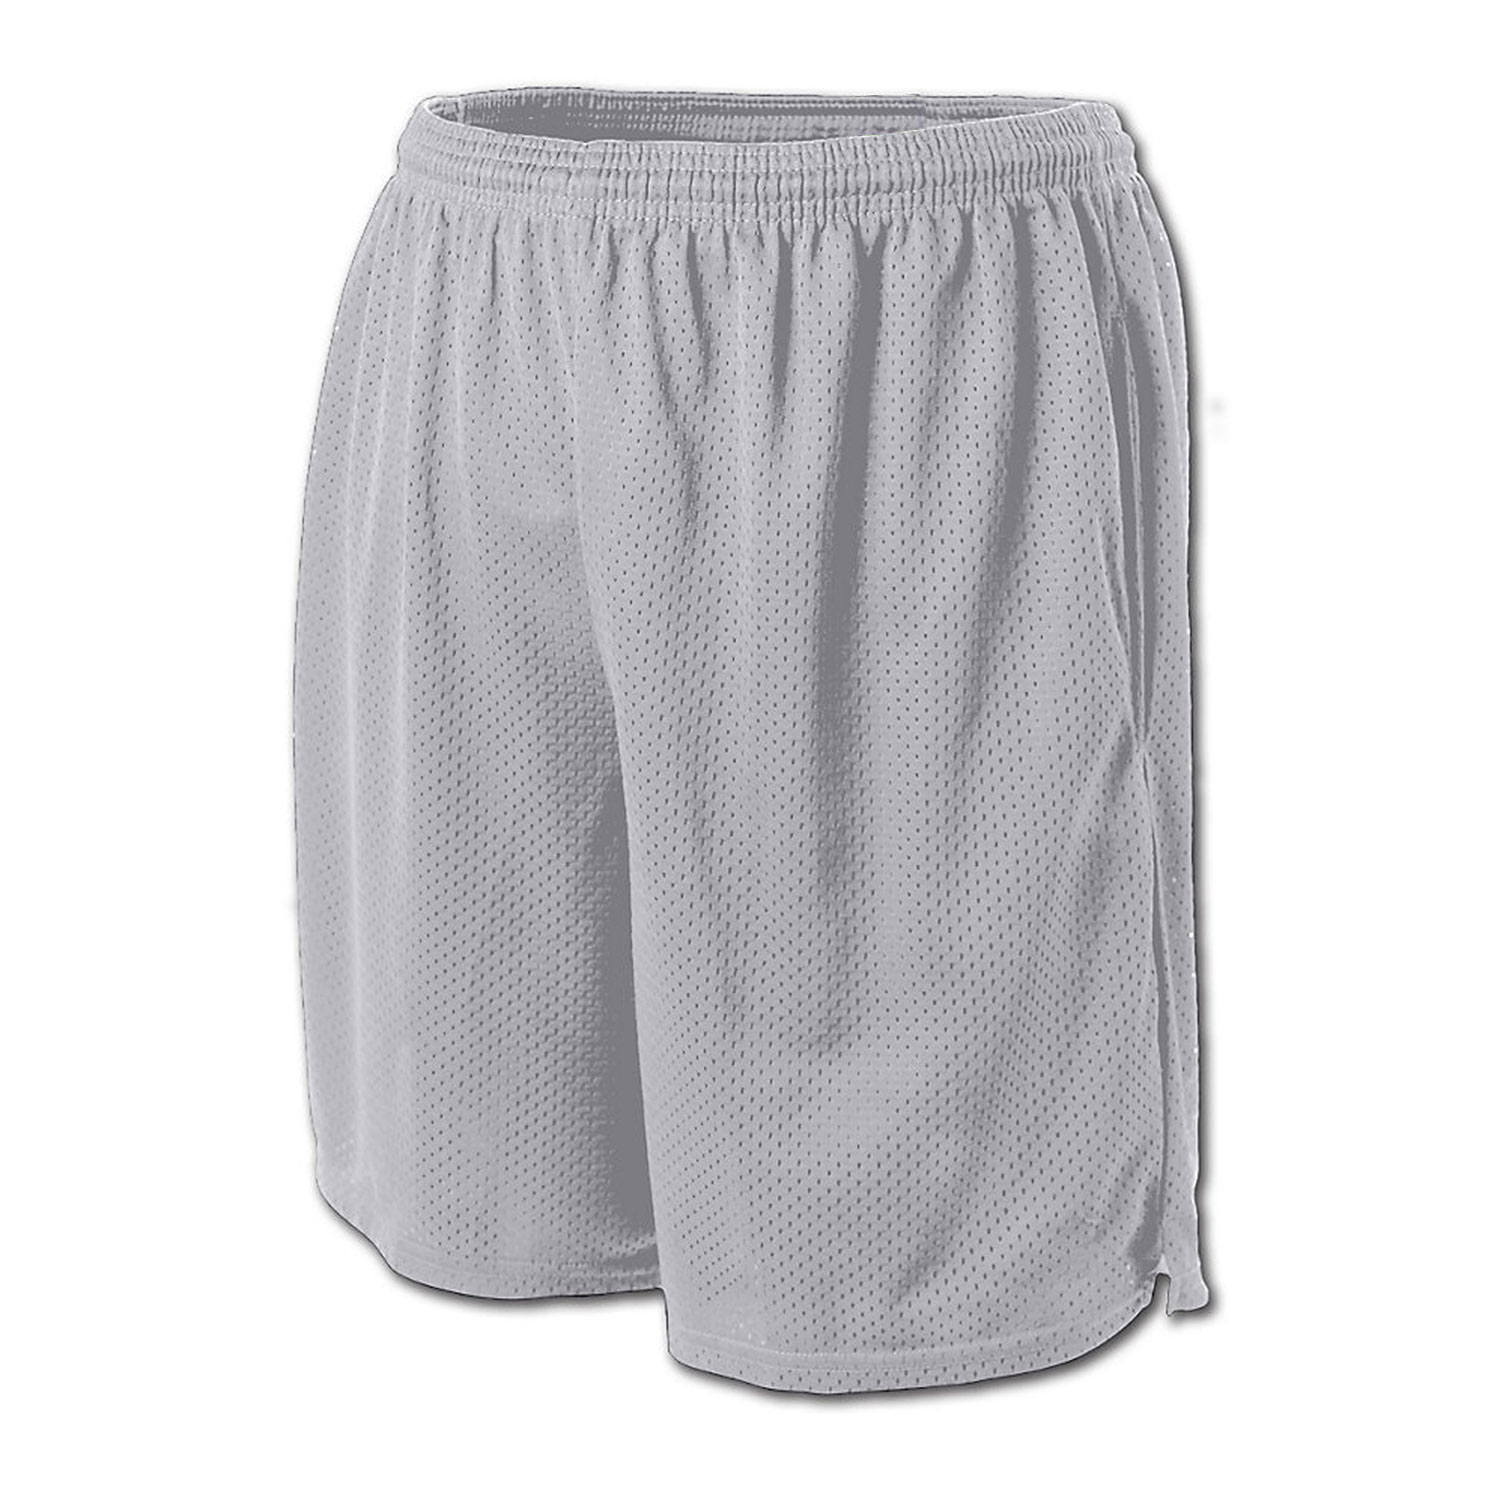 "Champion Tactical 9"" Mesh Shorts with Pockets"